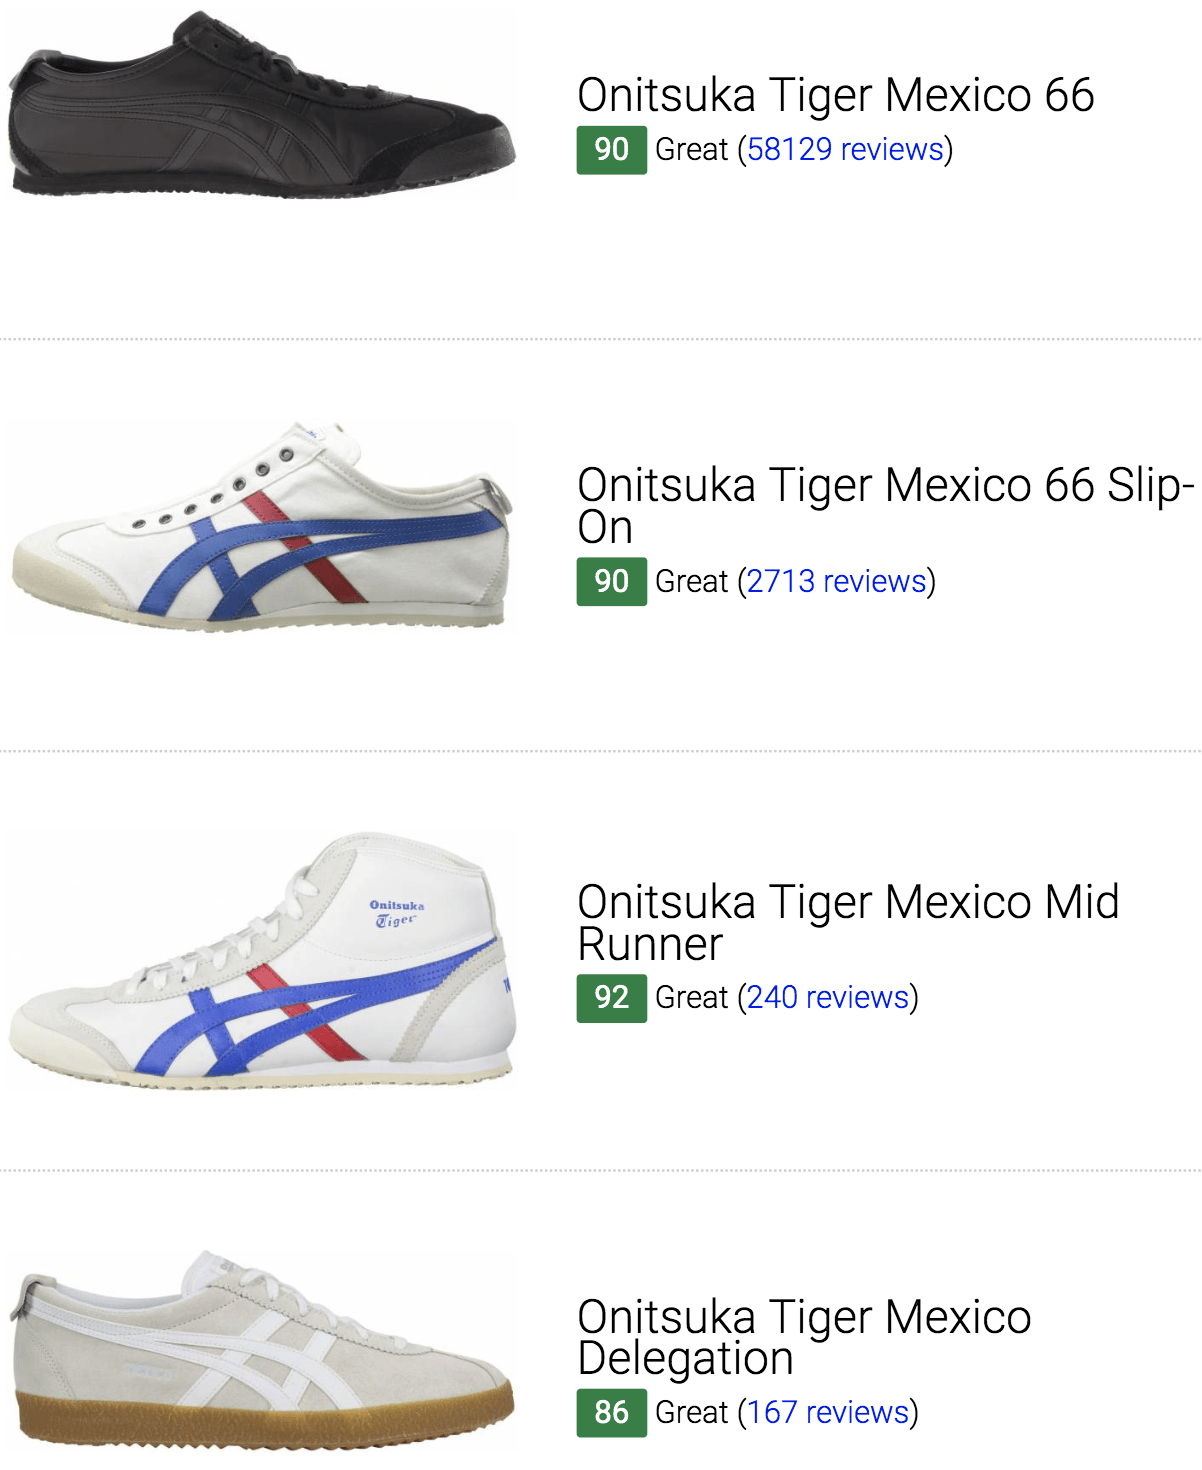 onitsuka tiger mexico 66 yellow zhavia ii review